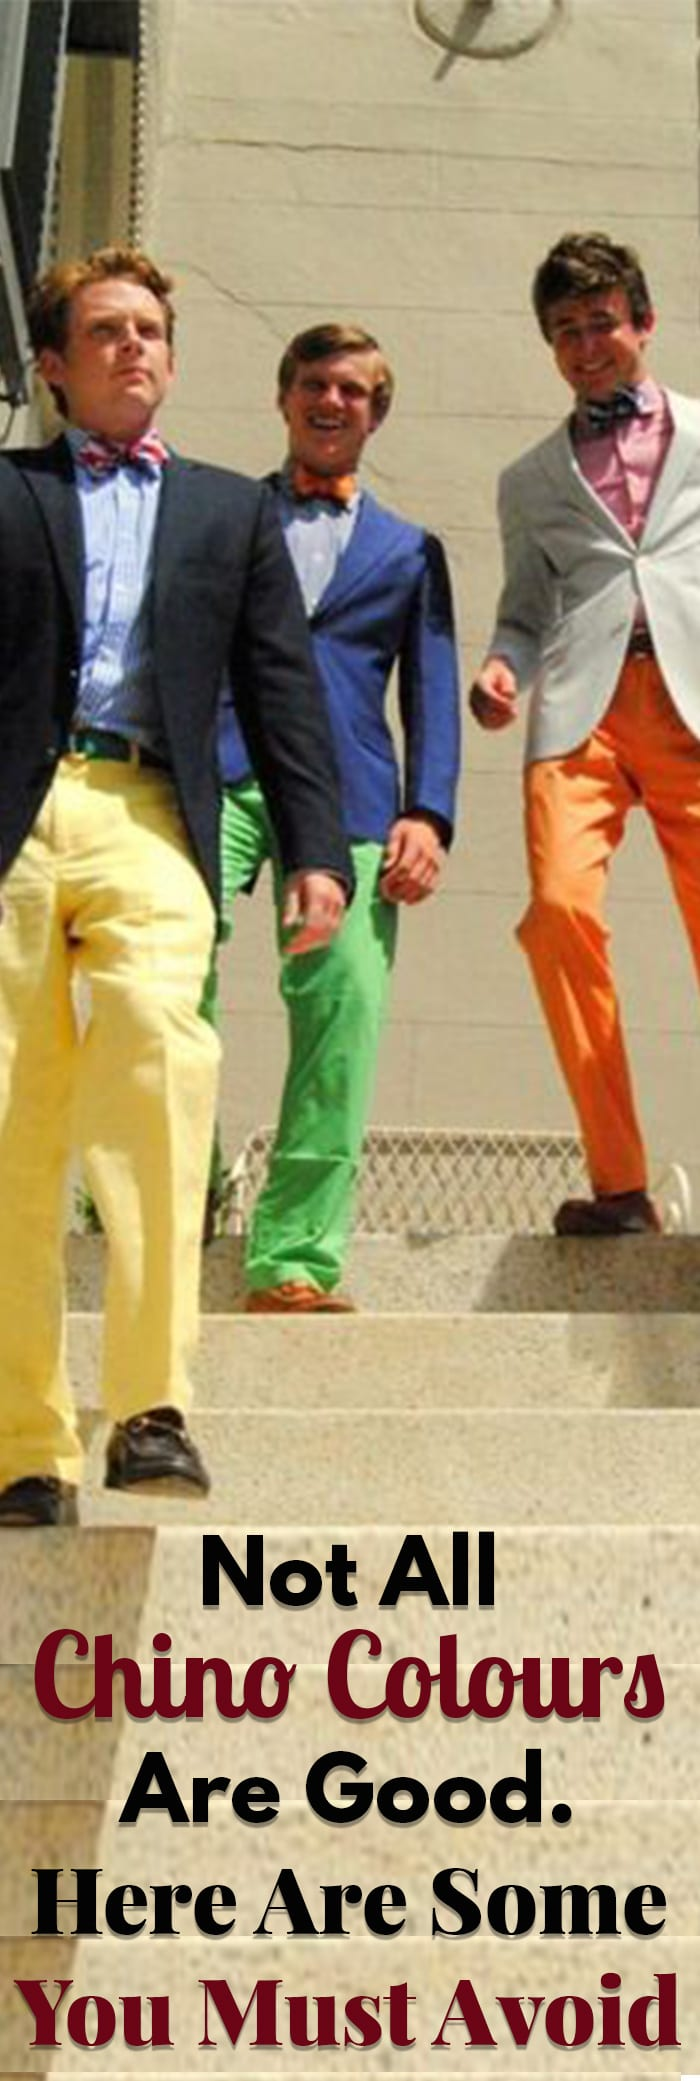 Here Are Some Chino Colours You Must Avoid